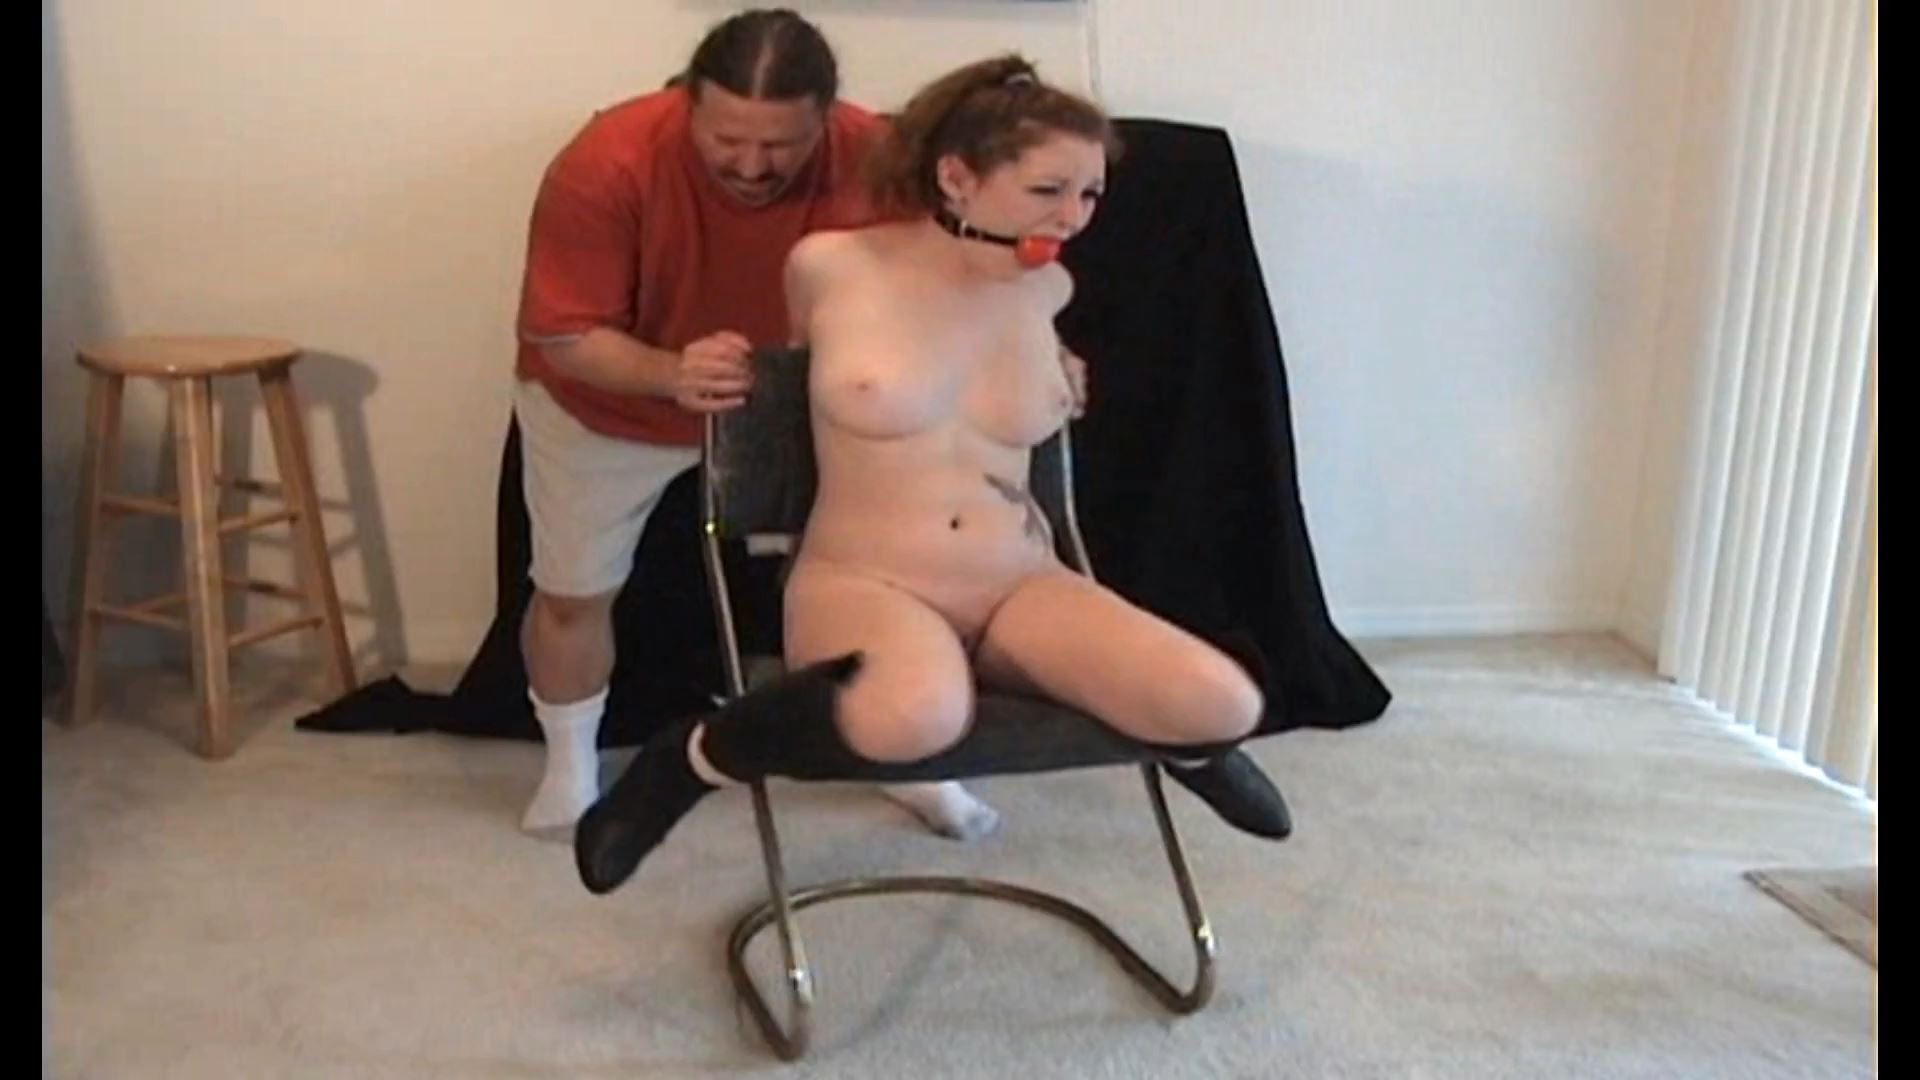 Topless girl tied to chair  Porn galleries